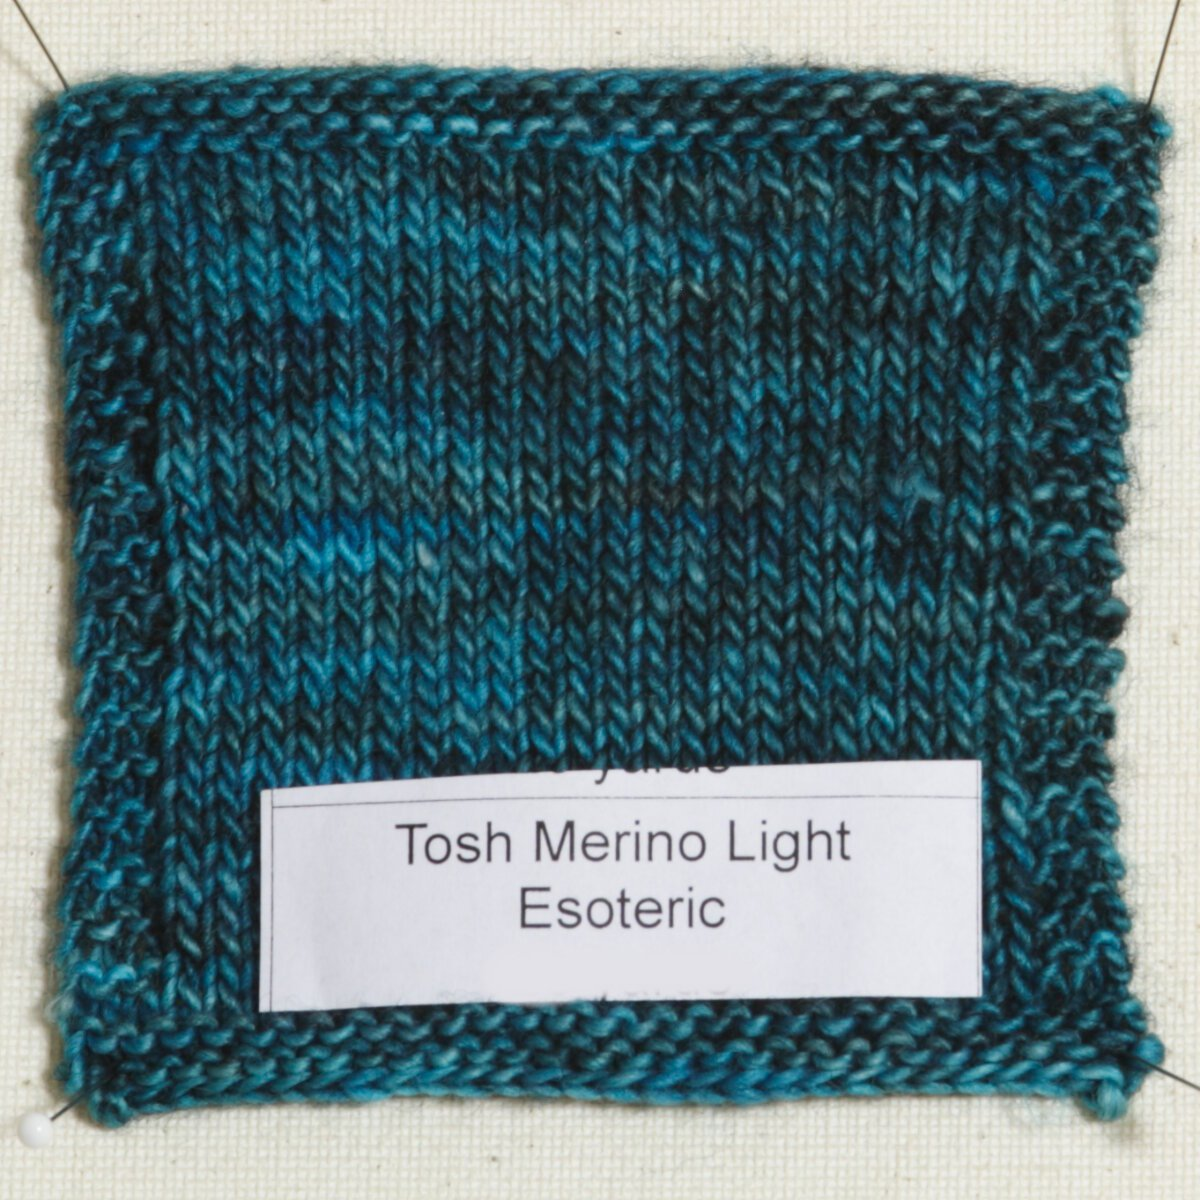 madelinetosh tosh merino light samples yarn esoteric at jimmy beans. Black Bedroom Furniture Sets. Home Design Ideas